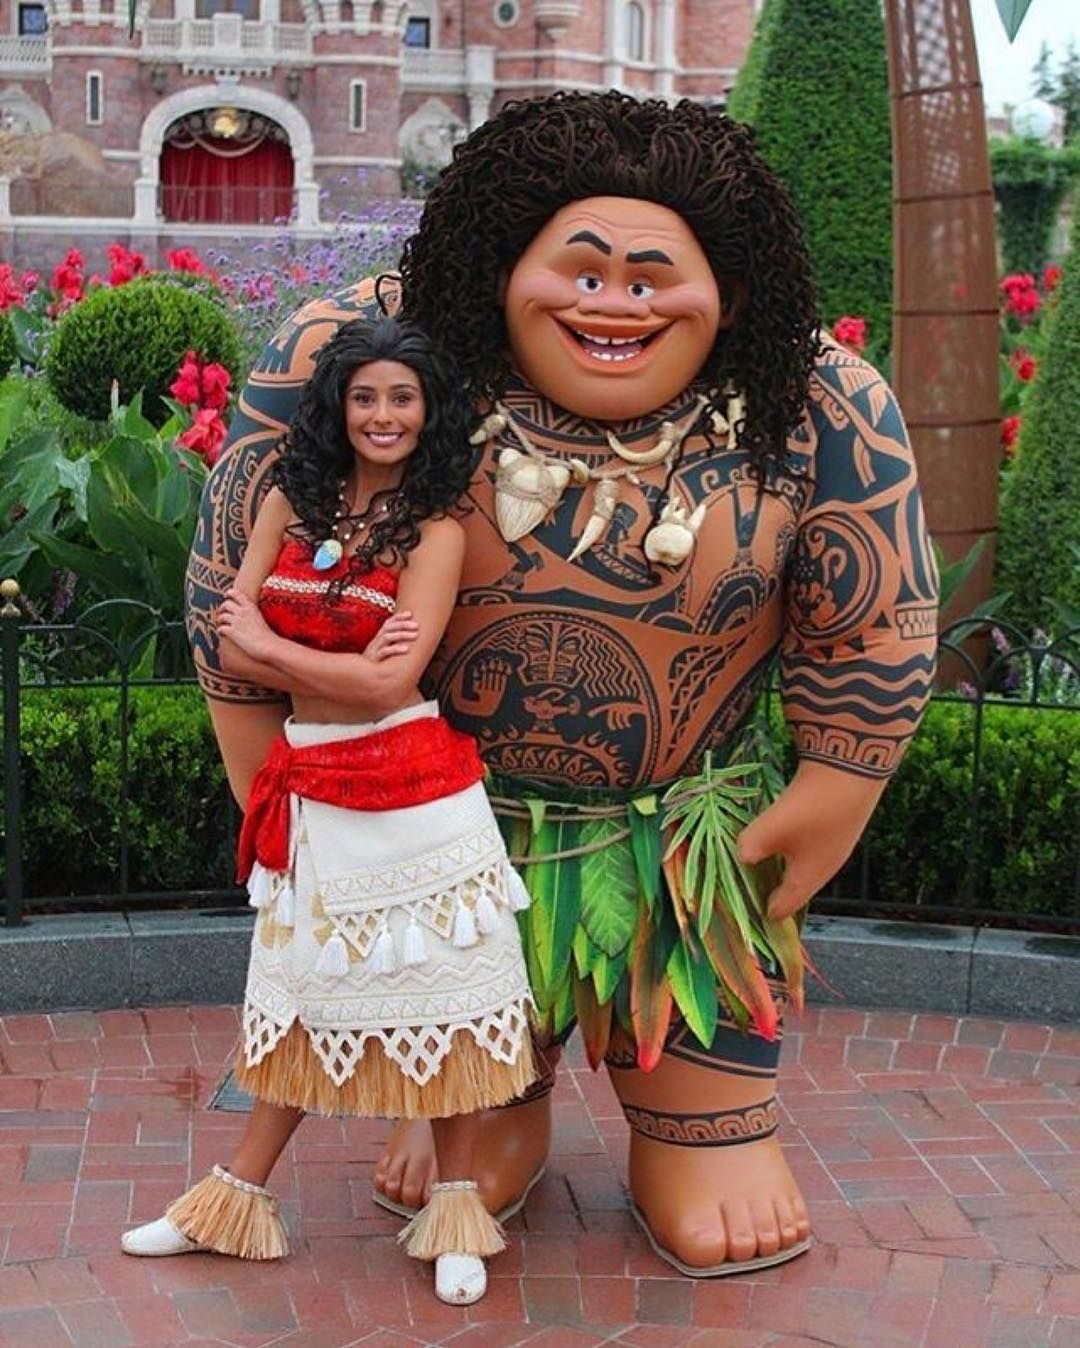 Moana And Maui Face Characters Pinterest Disney Disneyland